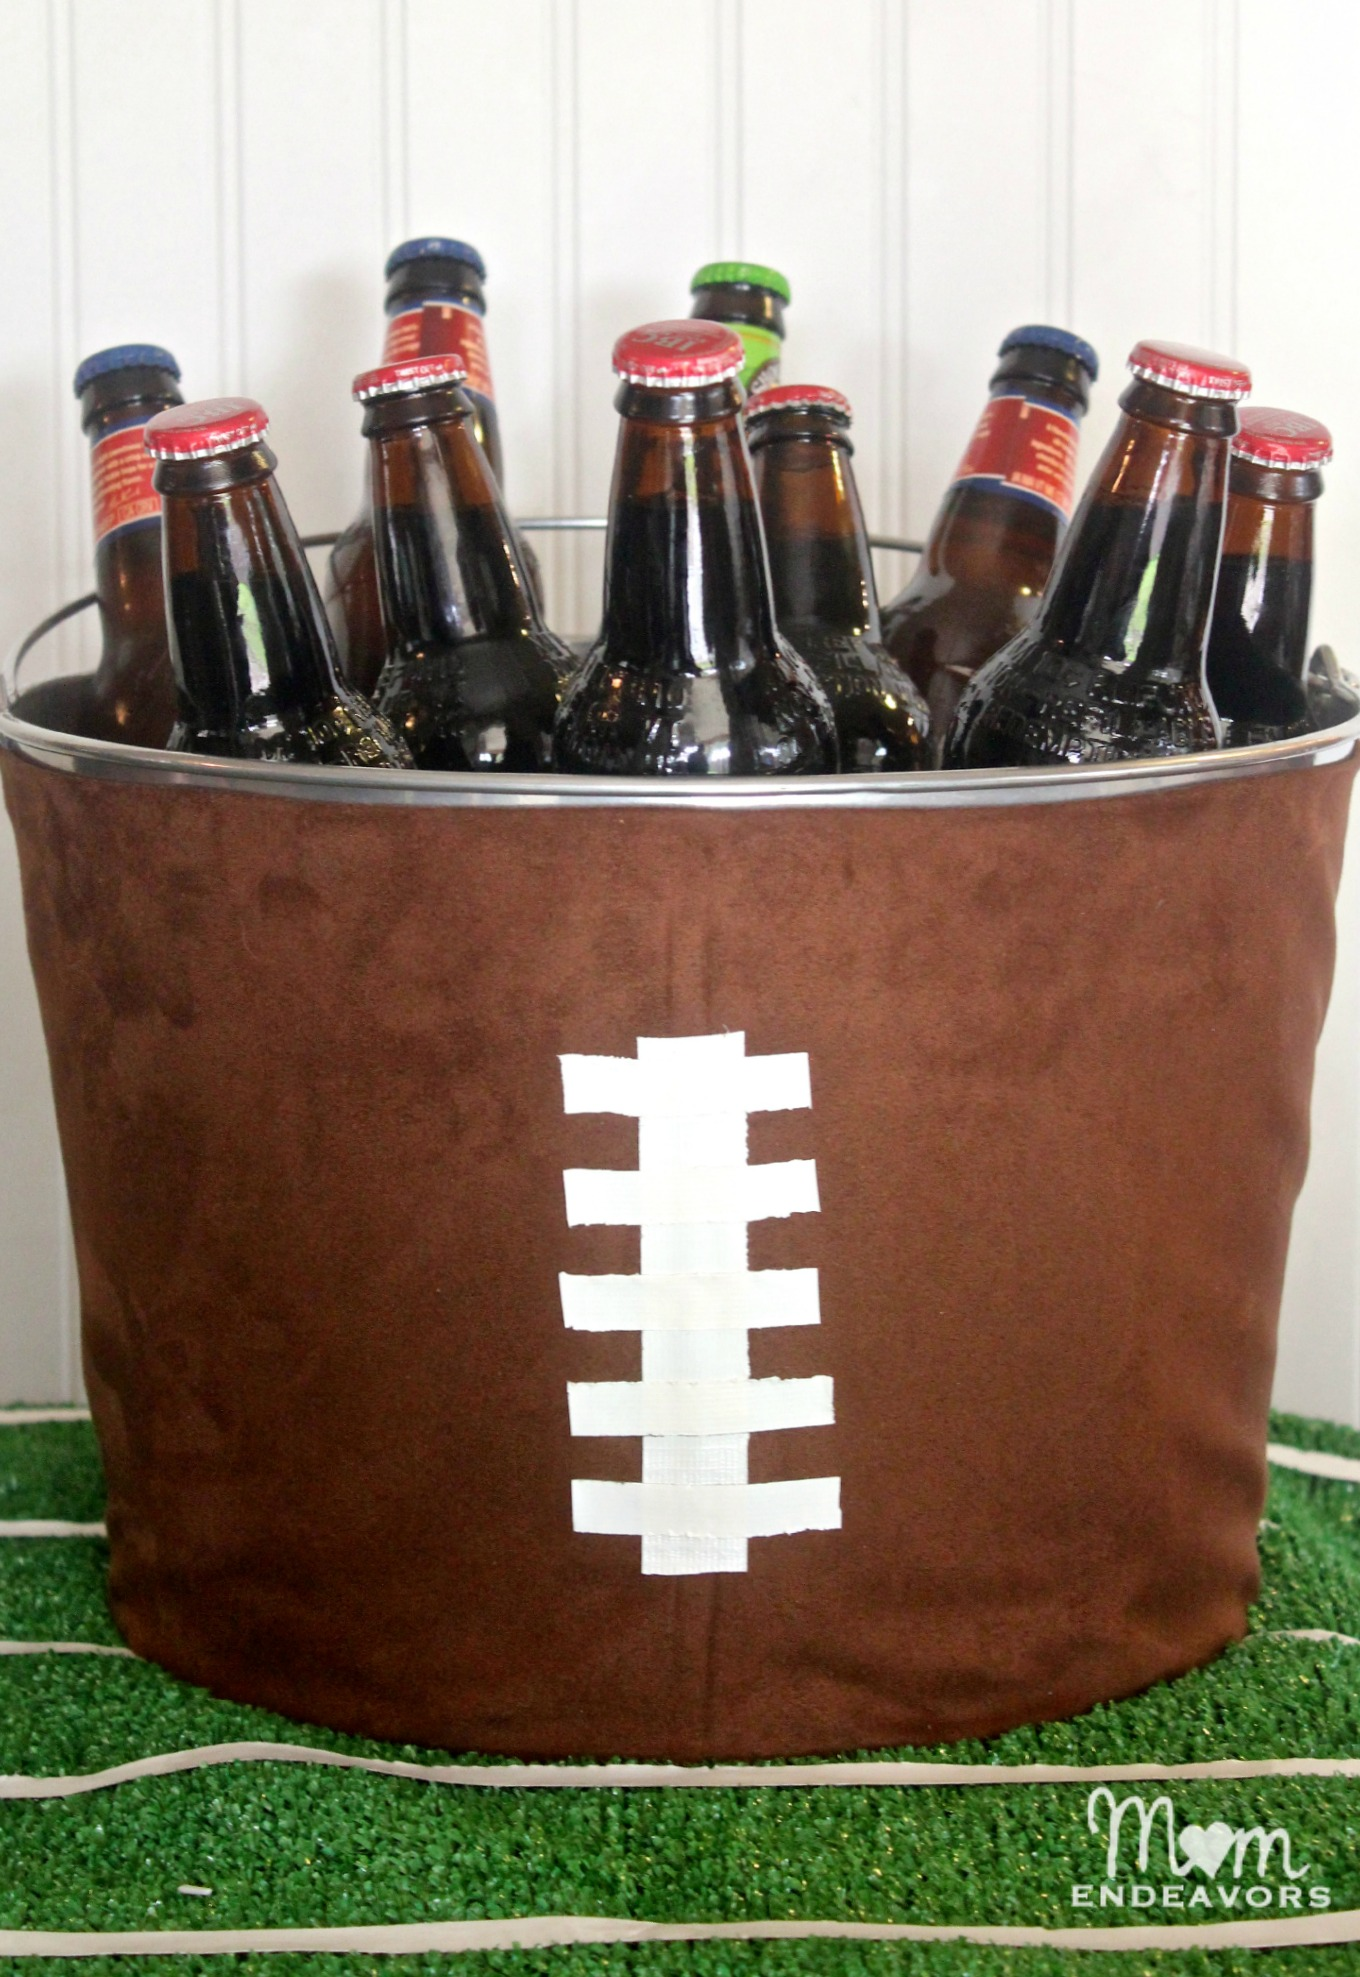 Football Party Decor Diy Football Drink Tub. Dining Room Storage Furniture. Decorative Lumbar Pillows. Rooms For Rent In Harrisburg Pa. Four Season Rooms Pictures. Home Decor Com. Decorative Reed Diffuser Sticks. Best Room Darkening Blinds. Extra Large Wall Decor